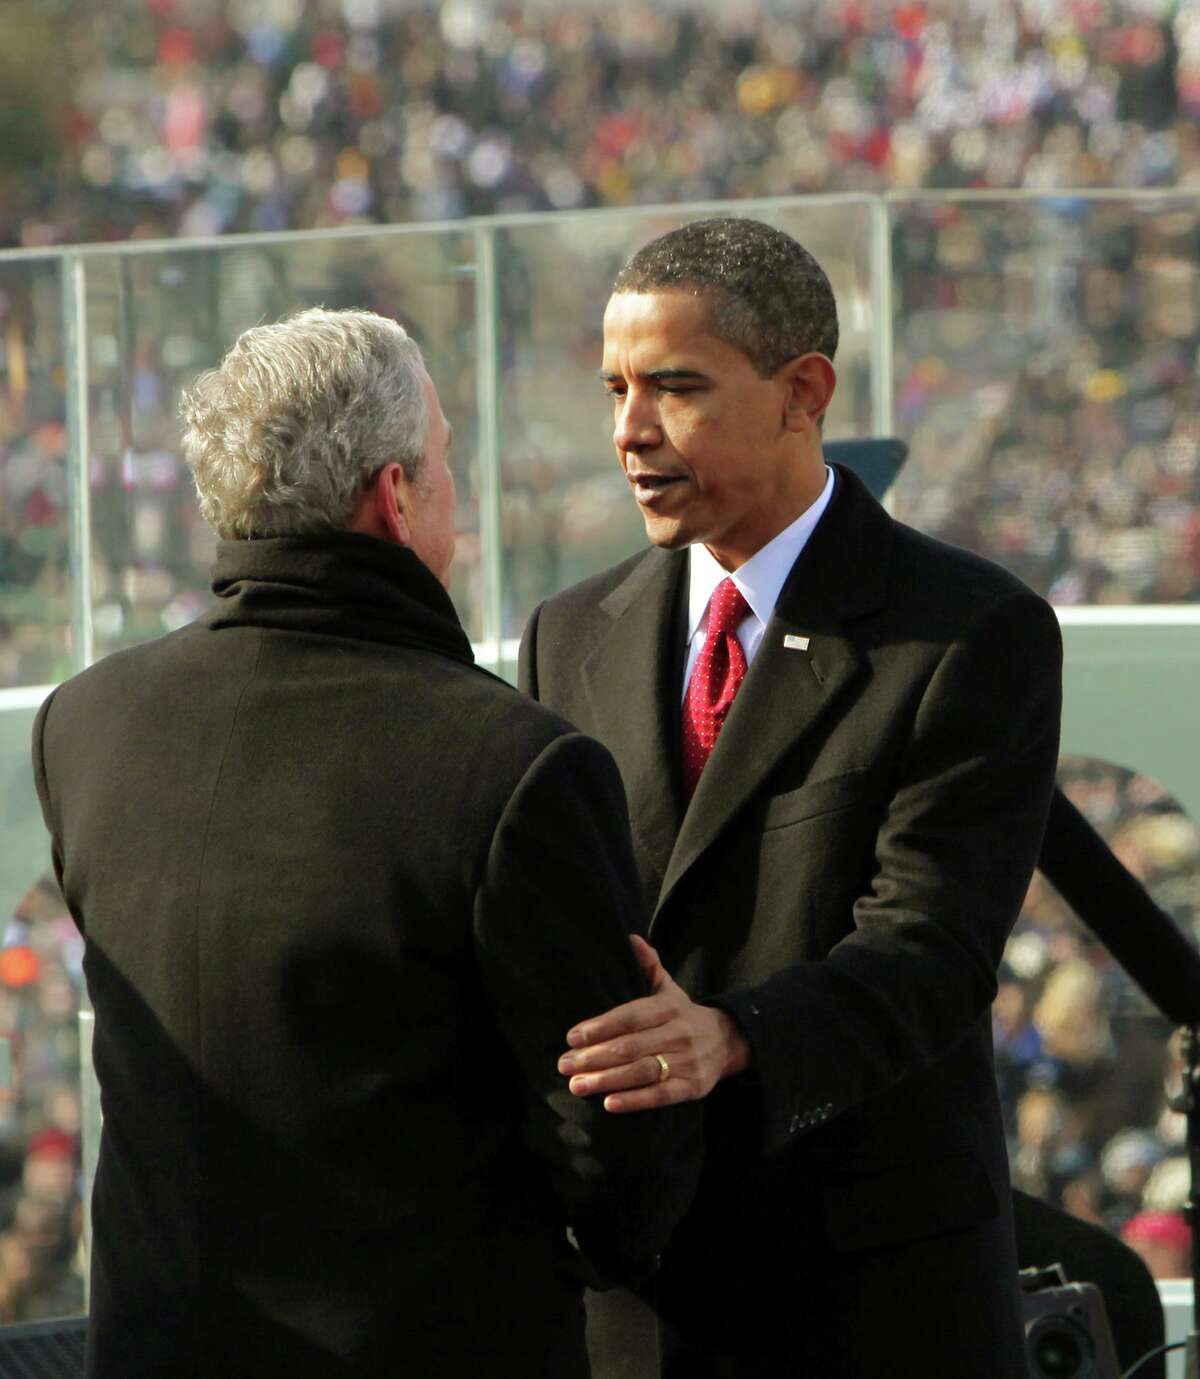 President Barack Obama takes a moment with former President George W. Bush just after Obama was sworn in as the 44th President of the United States and the first African-American to lead the nation at the U.S. Capitol in Washington, Tuesday, Jan. 20, 2009.